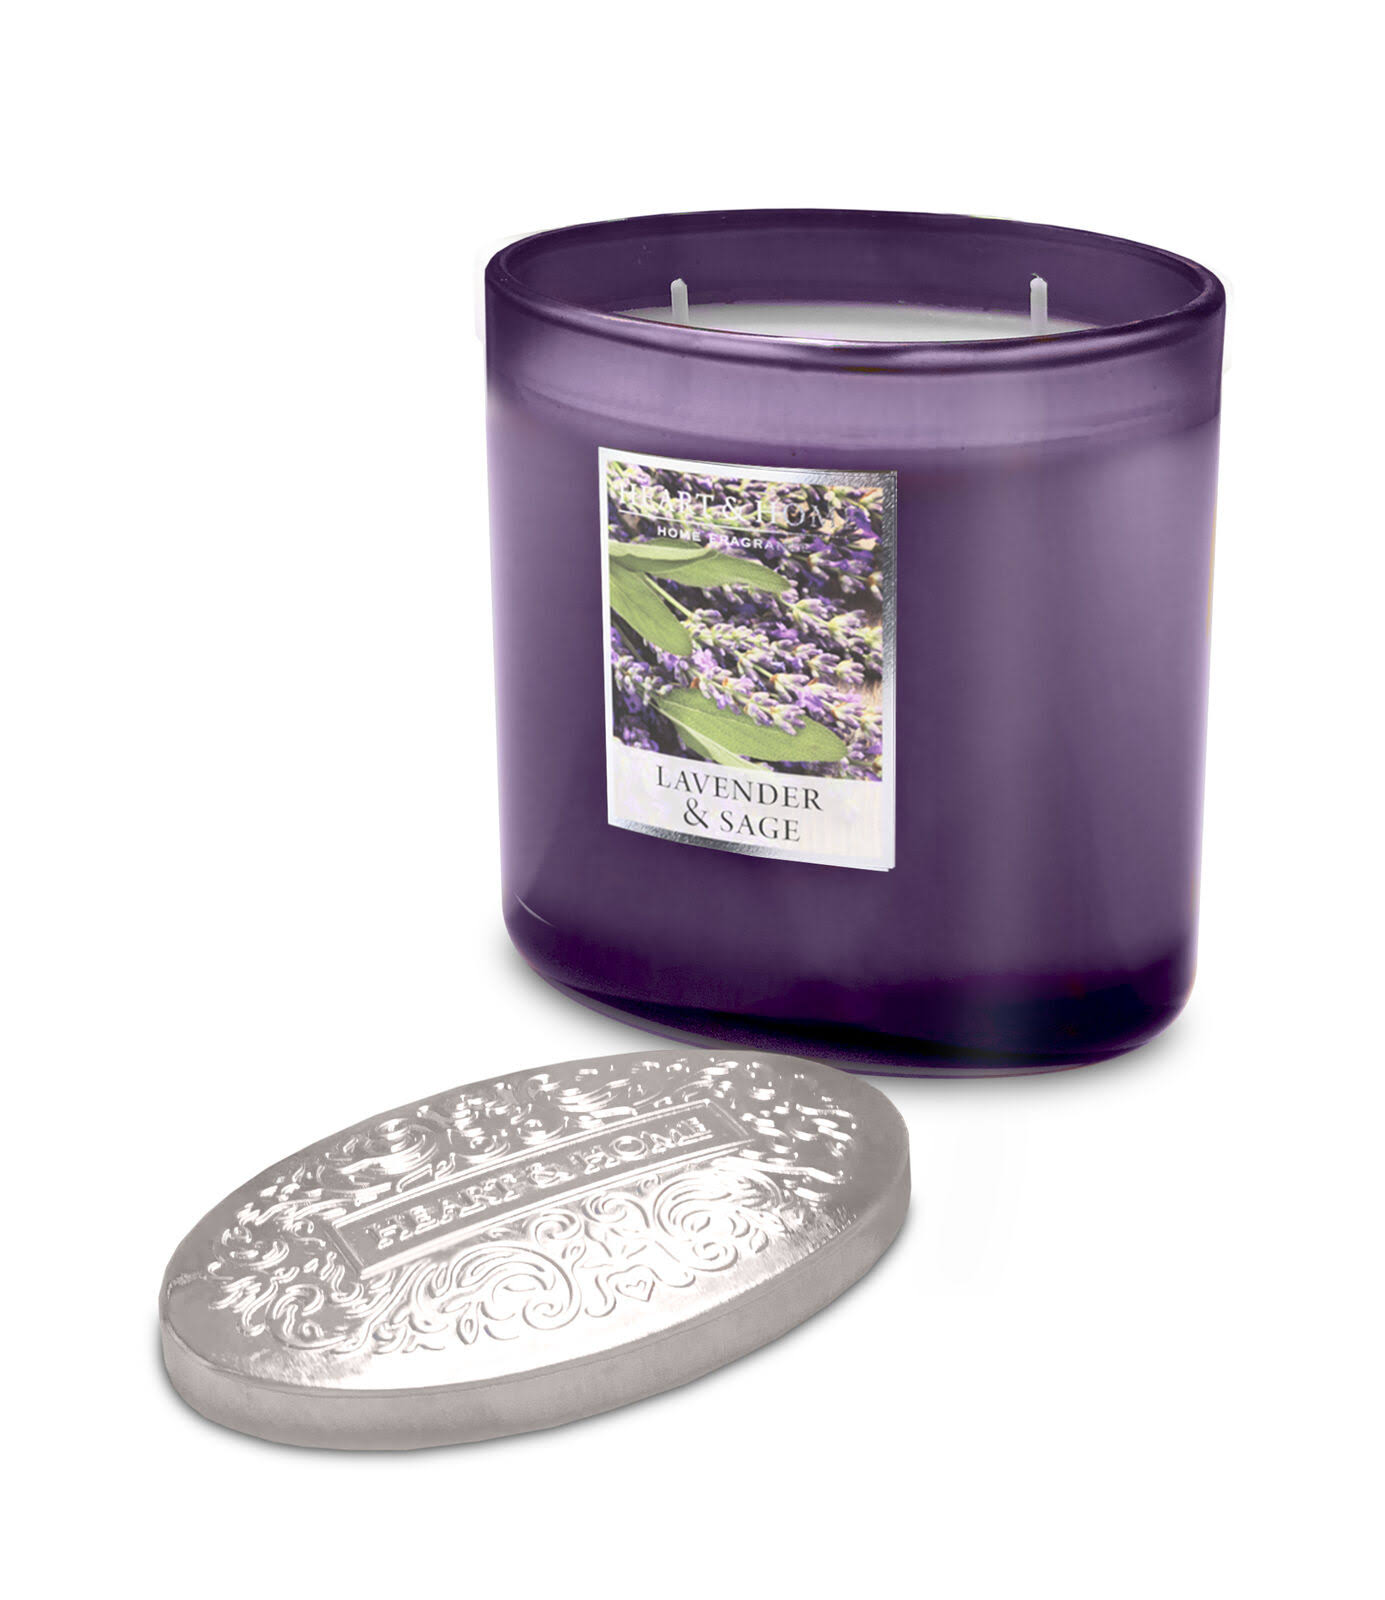 Heart & Home Ellipse Candle, 2 Wick - Lavender & Sage